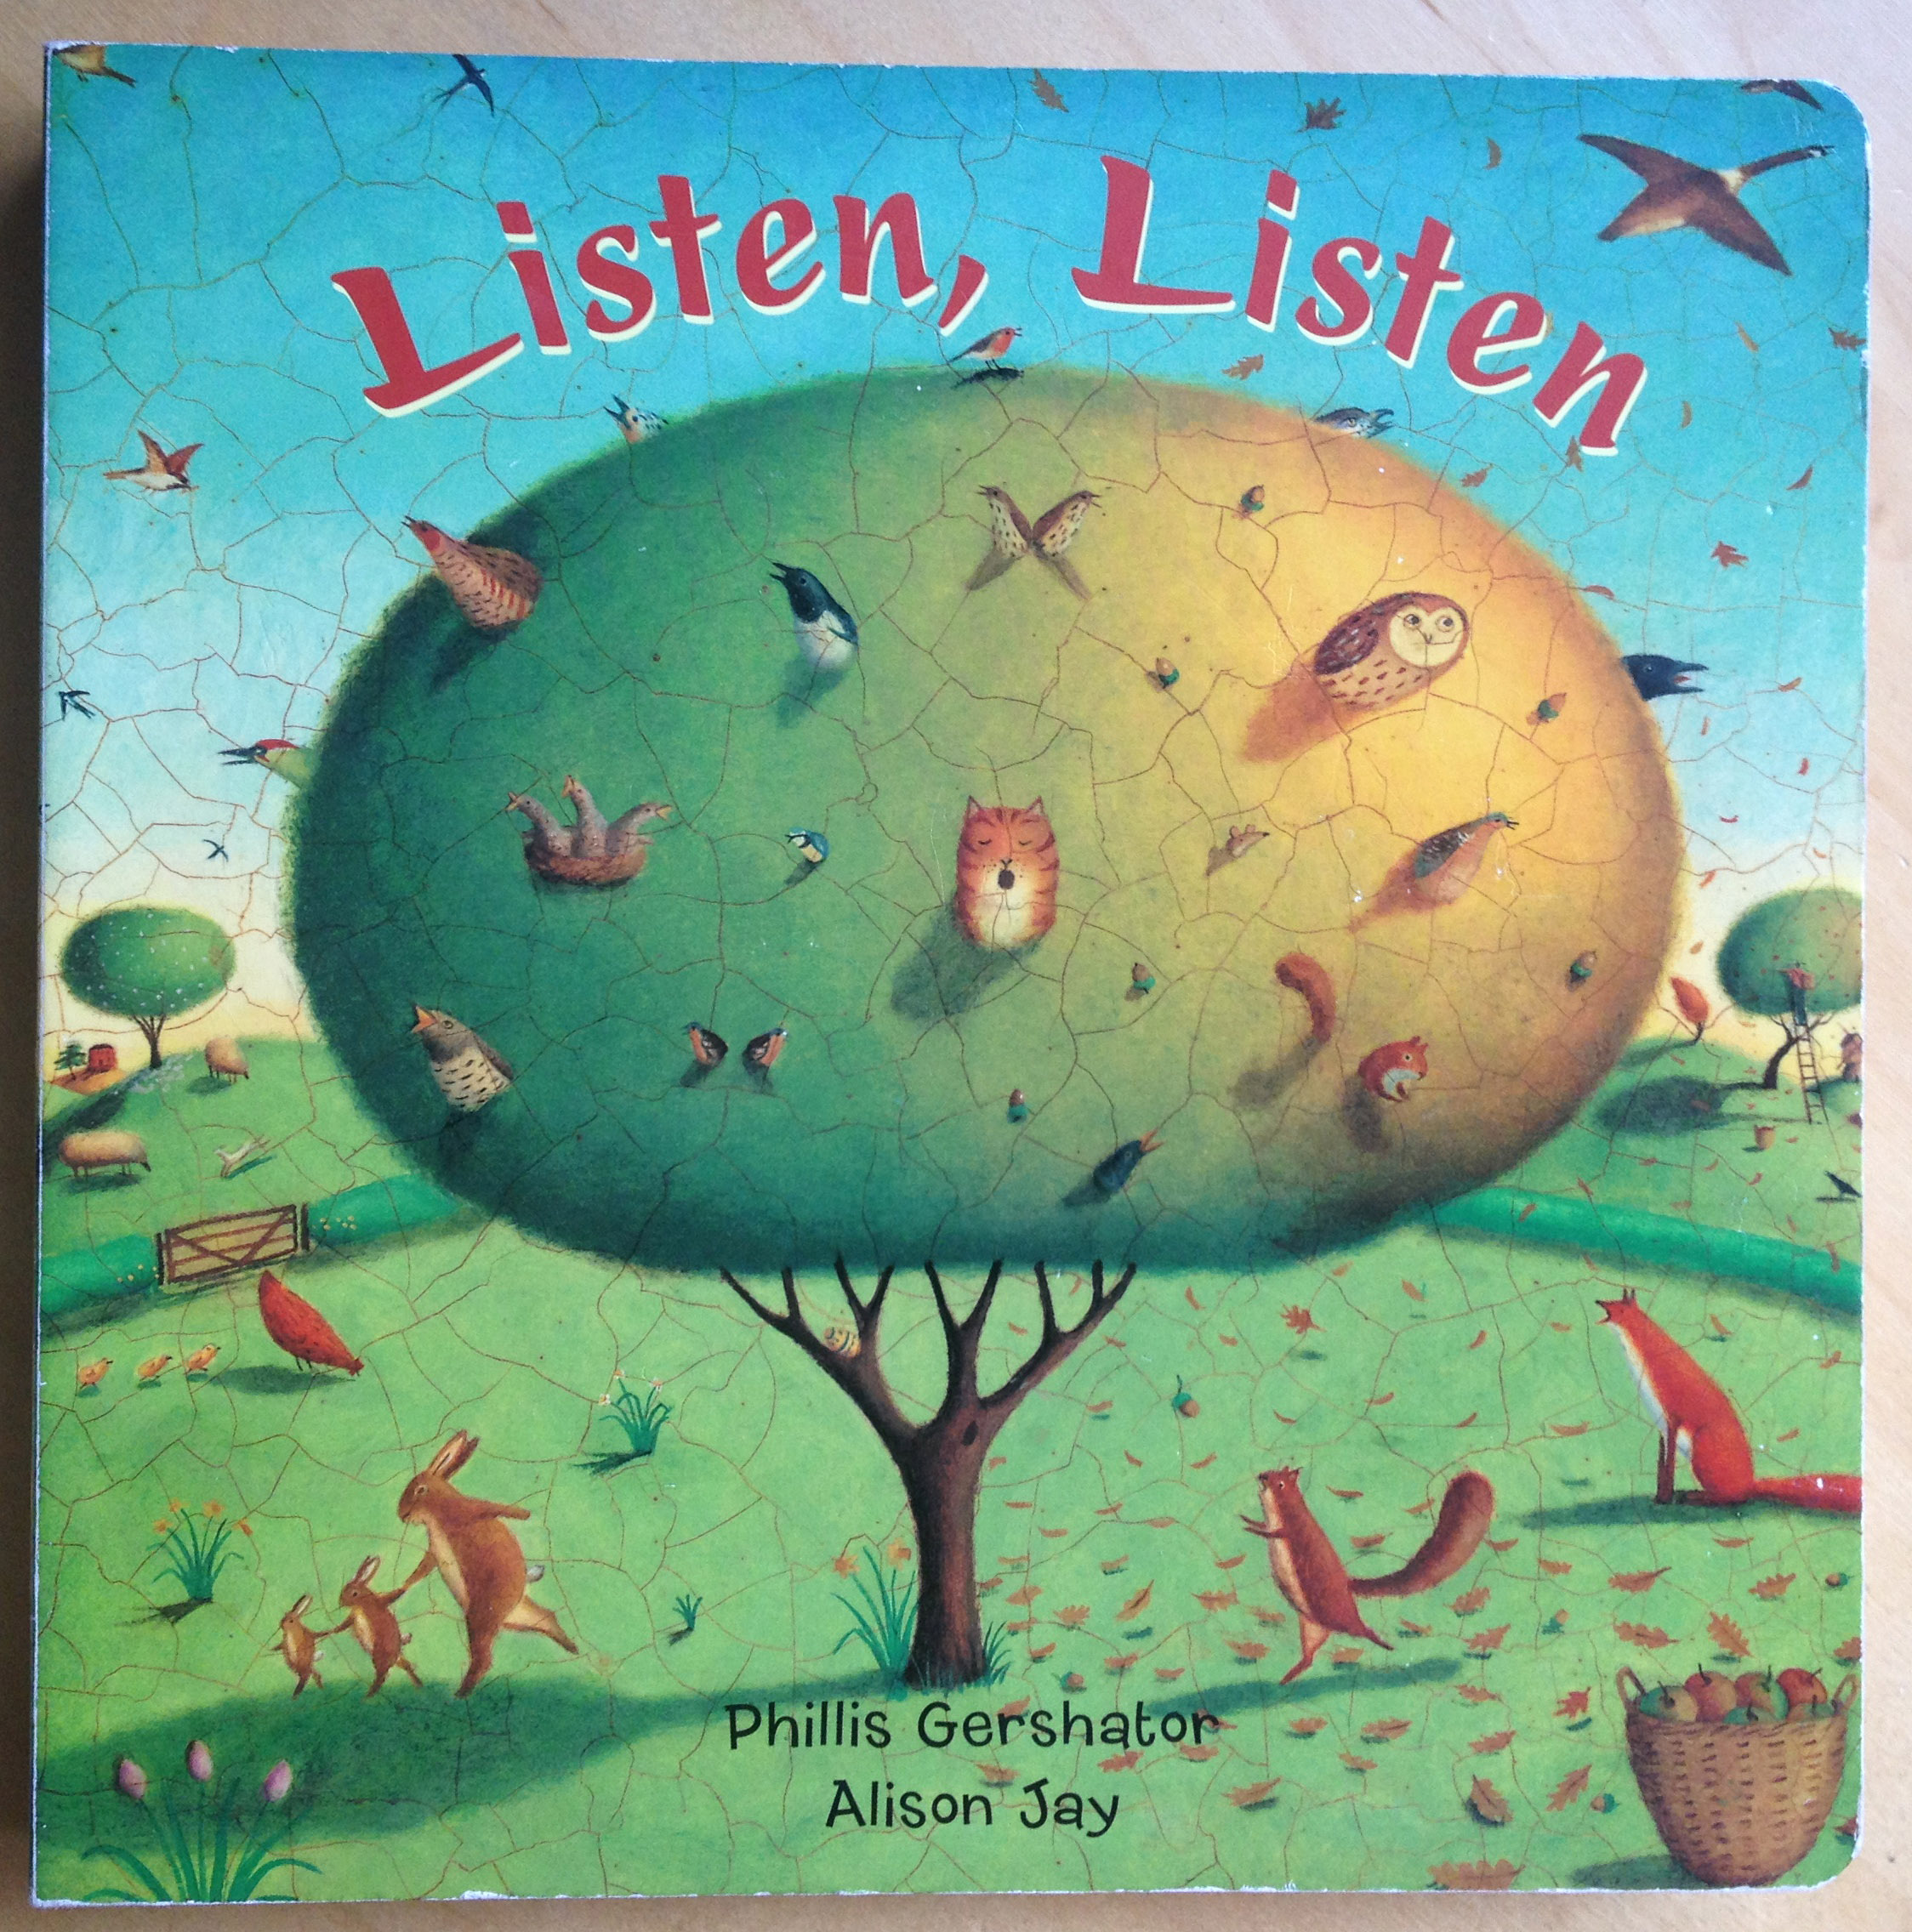 Listen Listen  by Phillis Gershator and Alison Jay